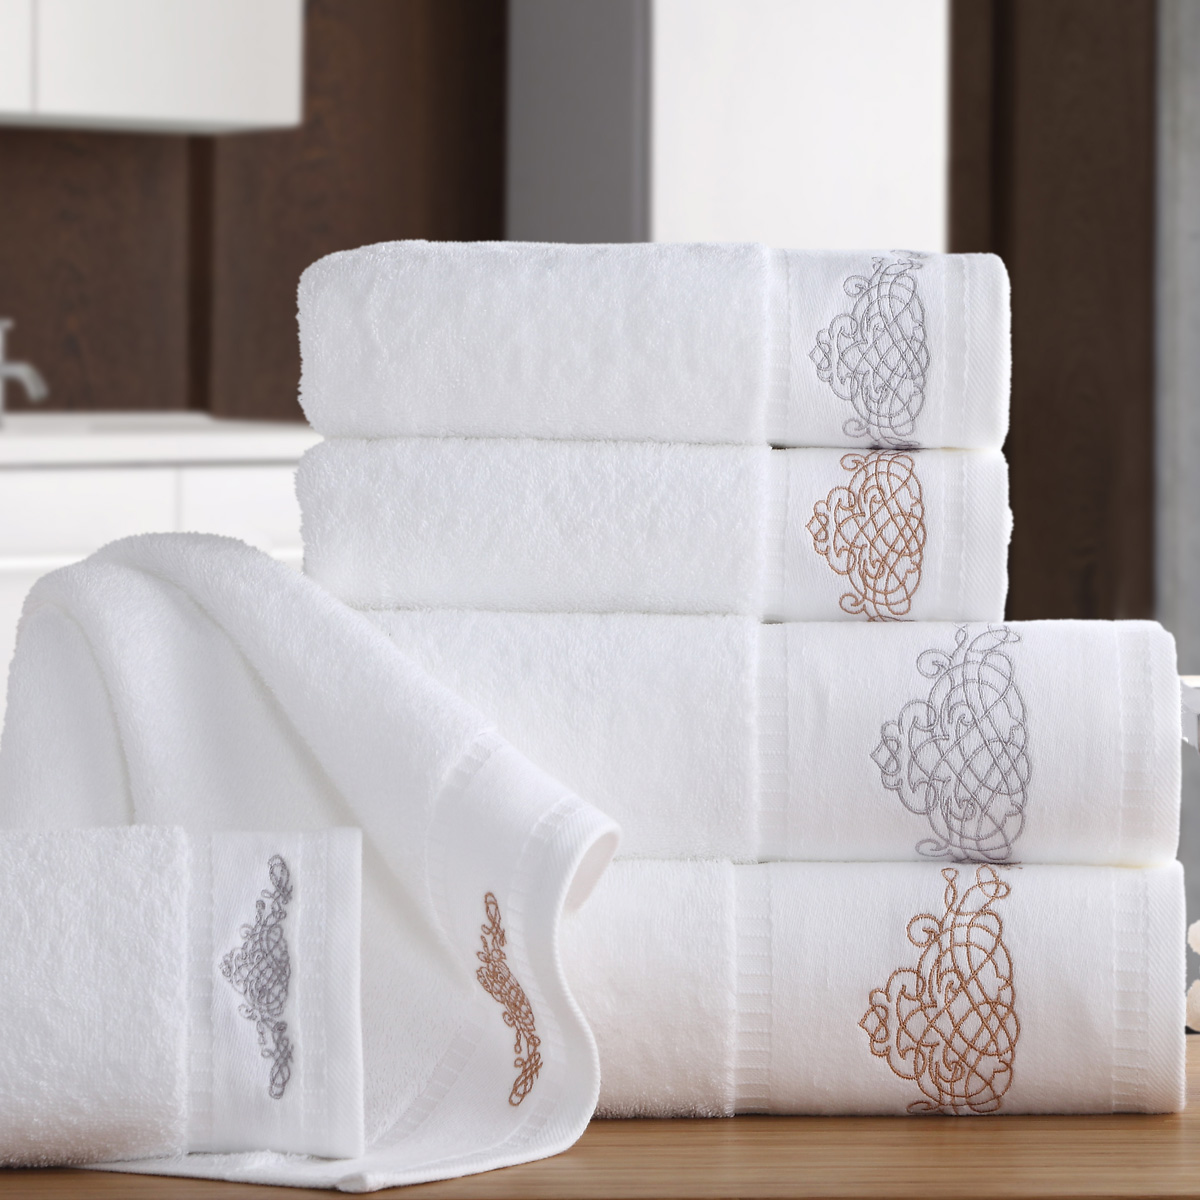 Pine forest hotel cotton embroidered towel towels to increase thicker soft towel towels towels bra adult male ms. couple